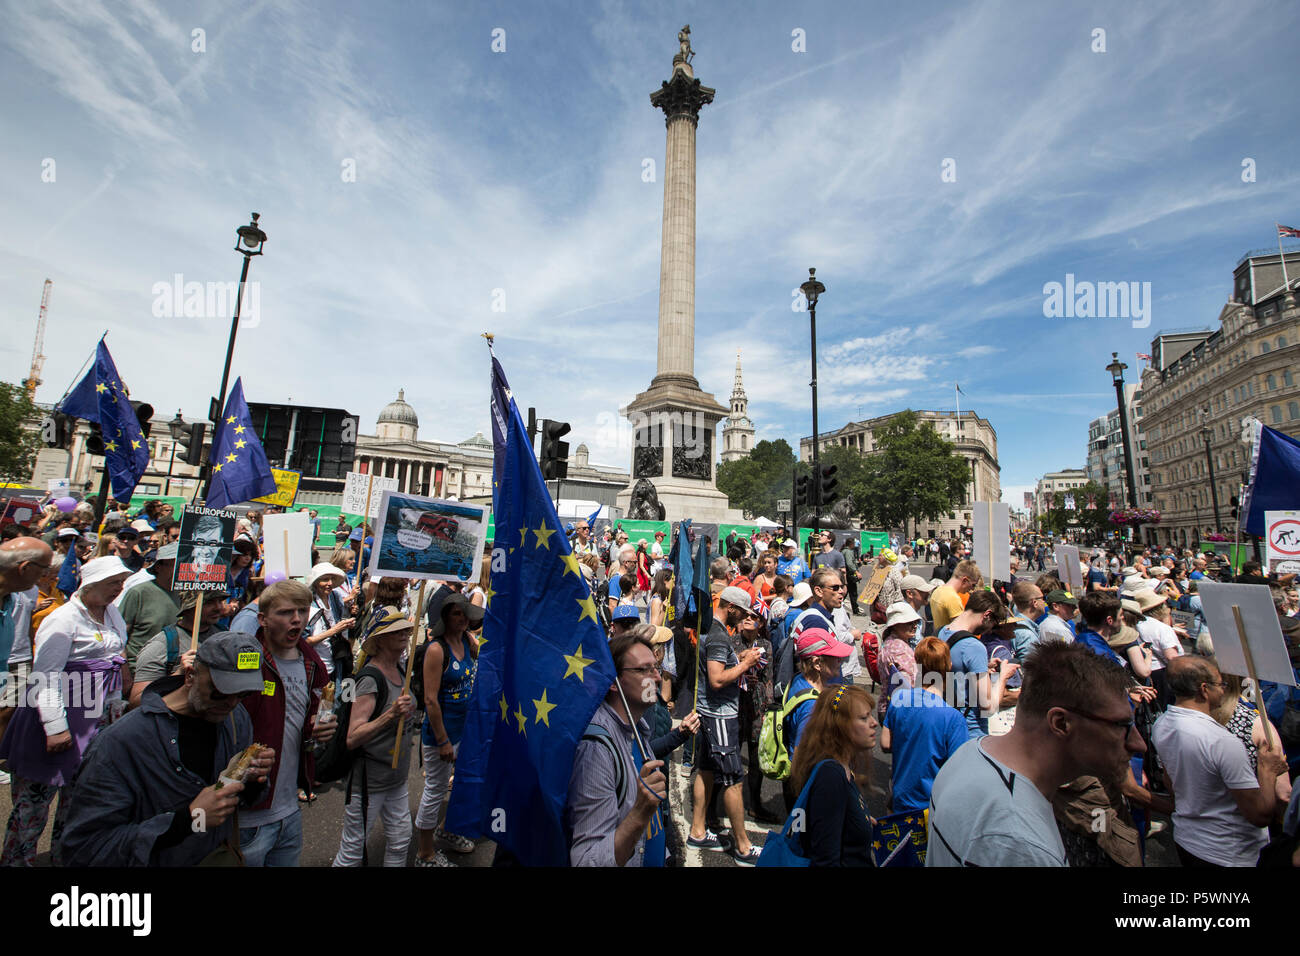 Biggest ever pro-European march held on 23rd June for a People's Vote. The protest coincides with the second anniversary of the Brexit referendum. - Stock Image